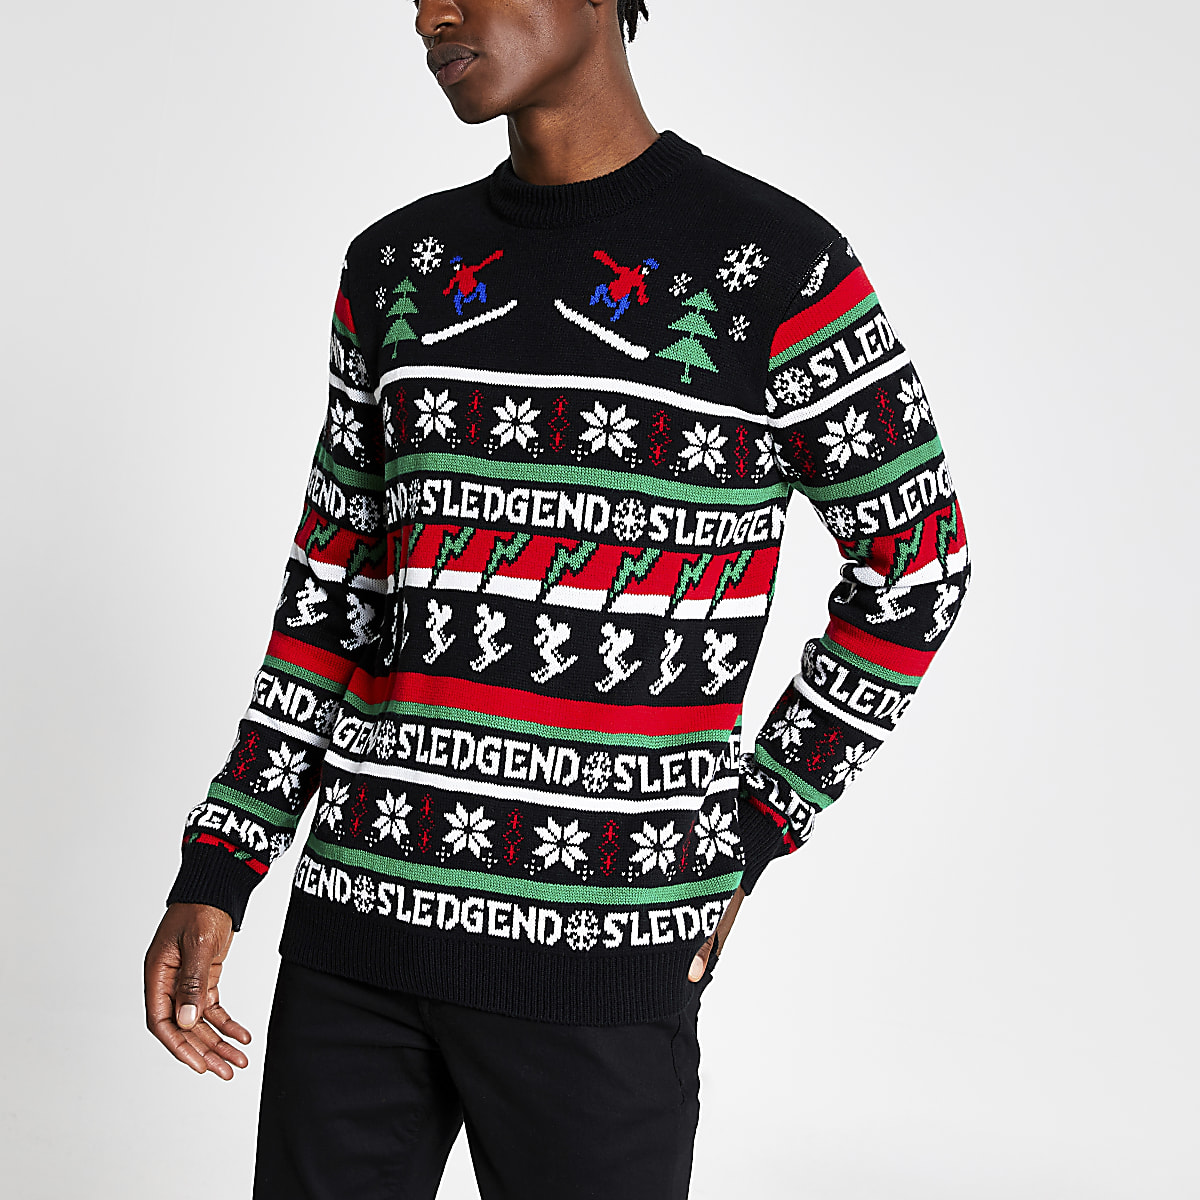 Black 'Sledgend' knitted Christmas jumper